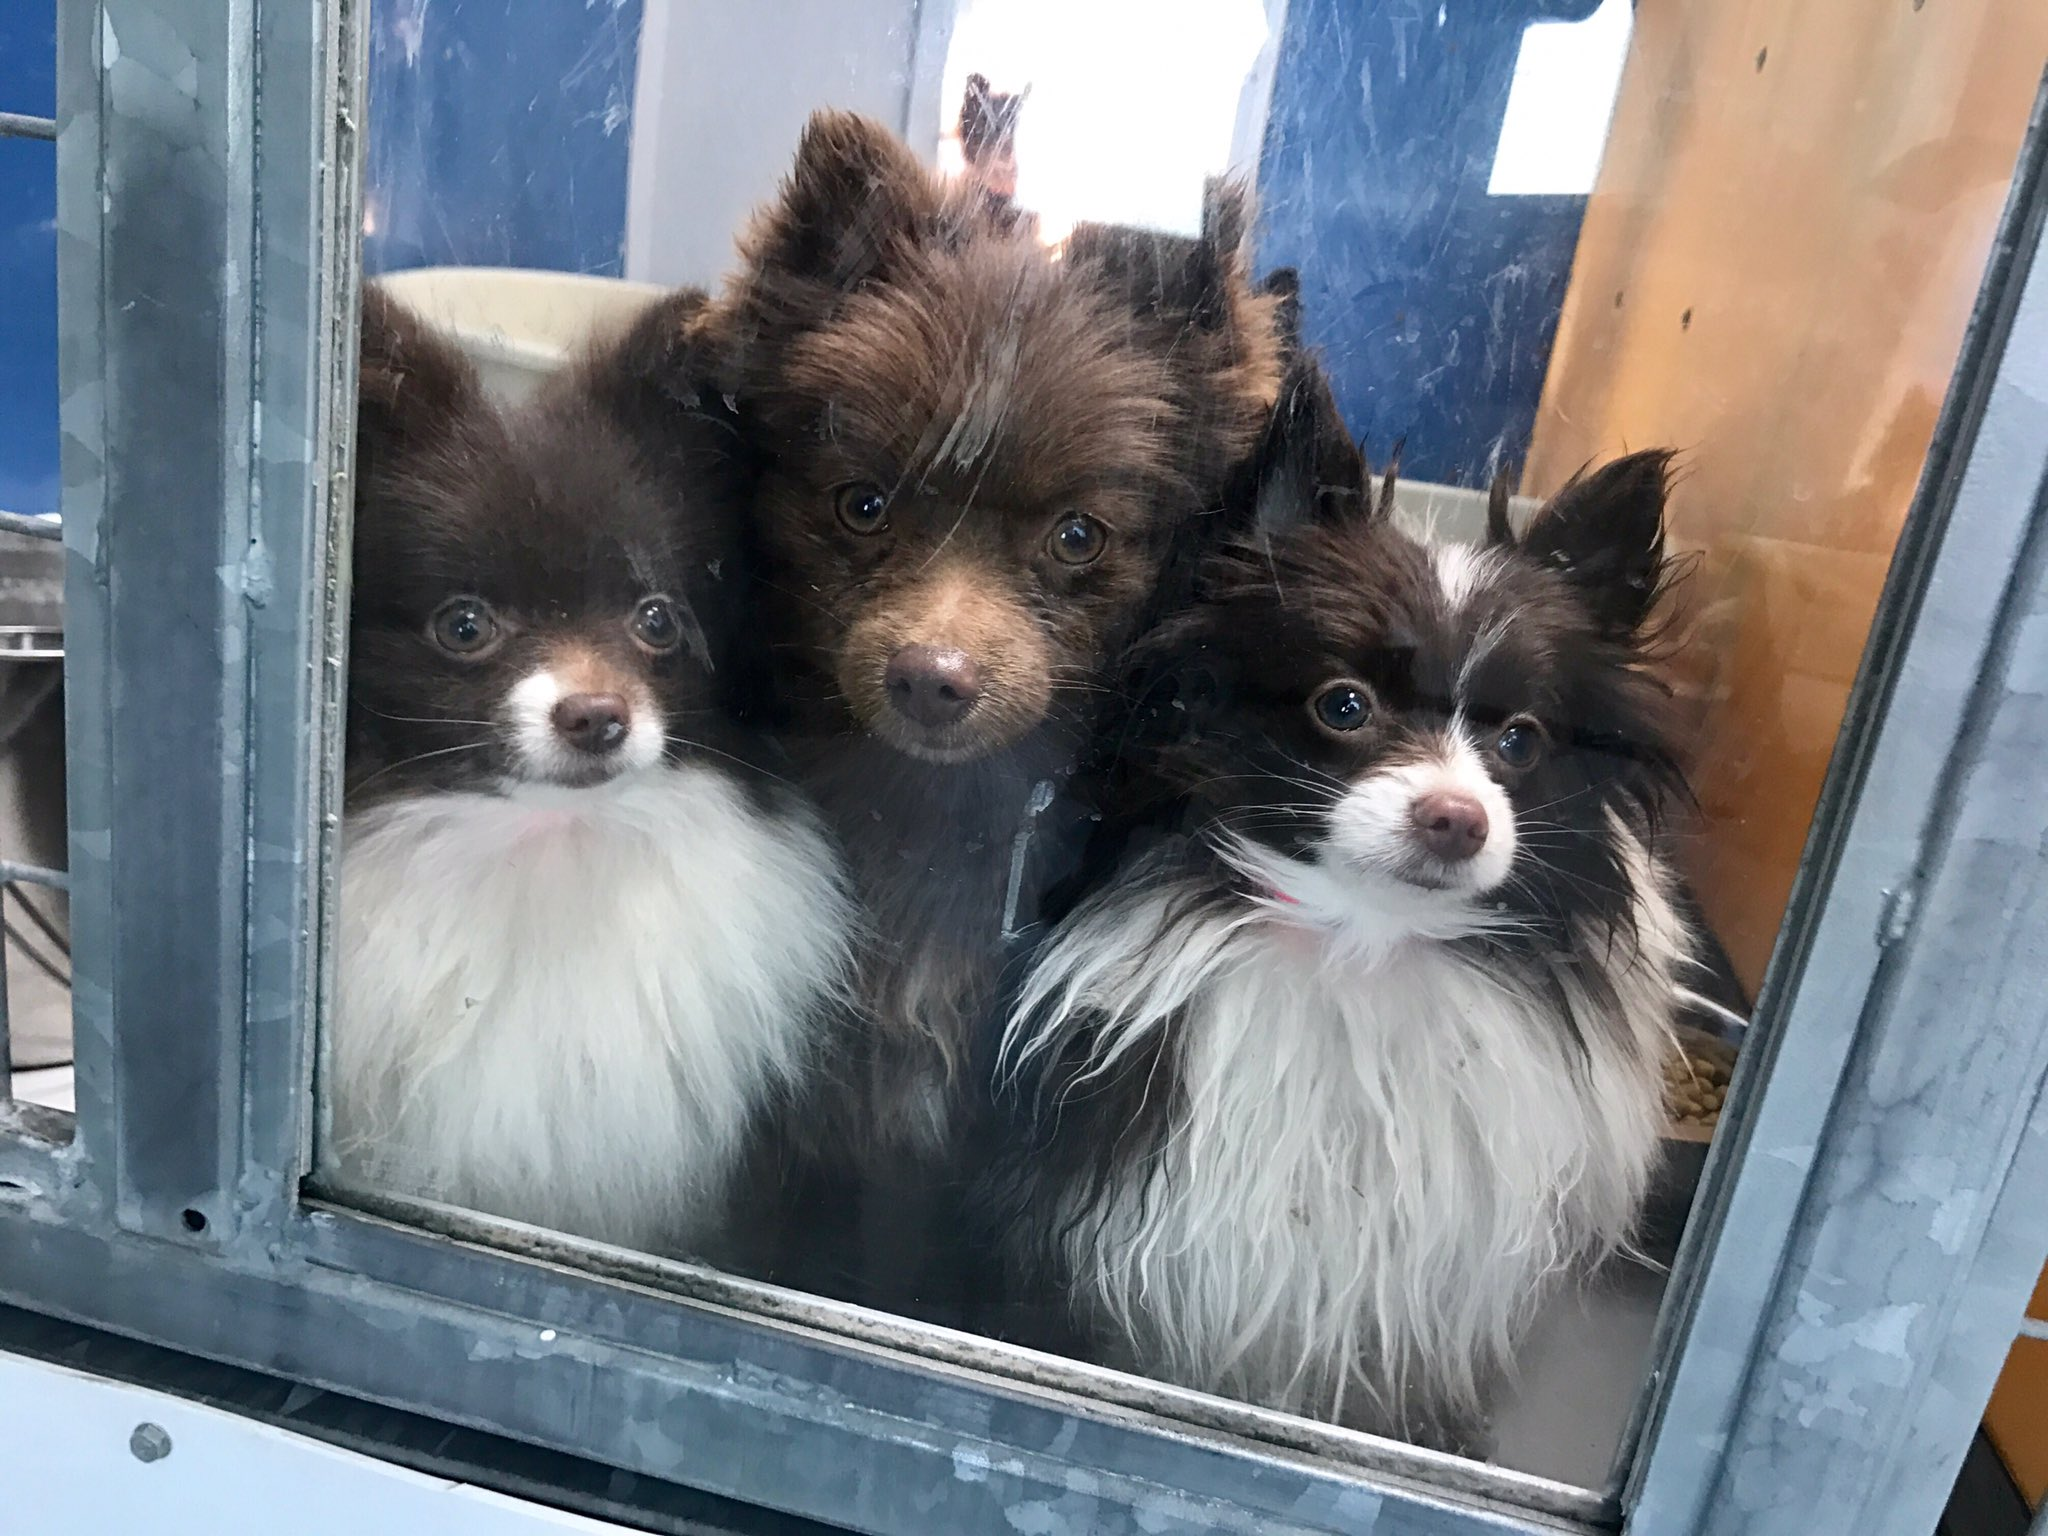 164 Pomeranians were rescued from a breeder in Sandy Valley, Nev. (Kelsey Thomas | KSNV)